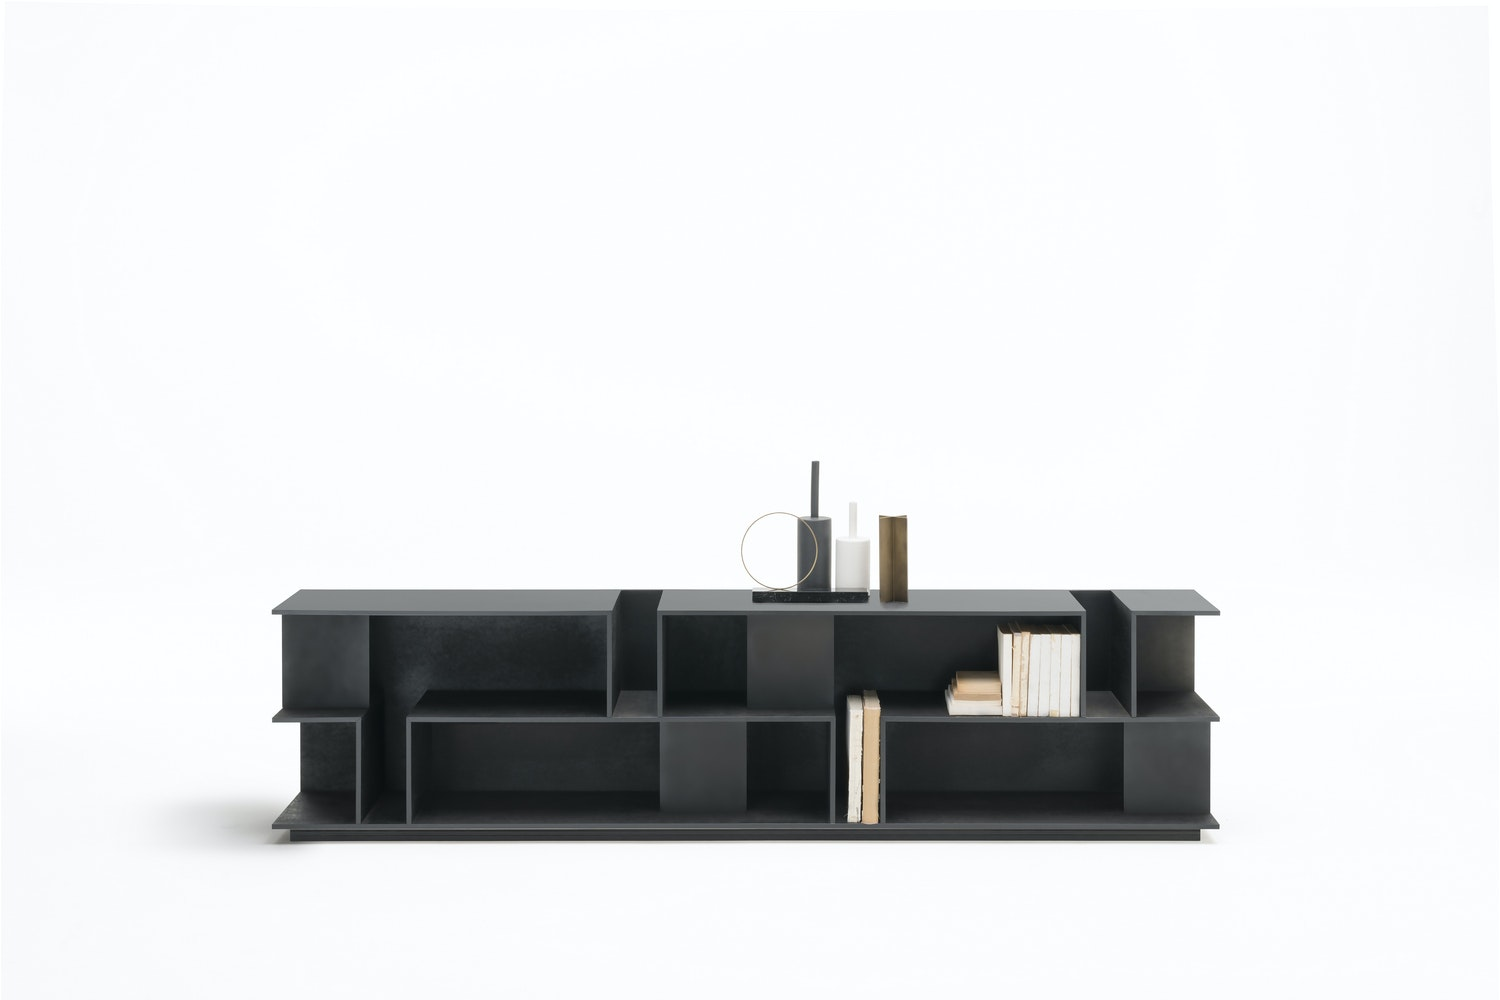 Grek Box by Gabriele & Oscar Buratti for Living Divani